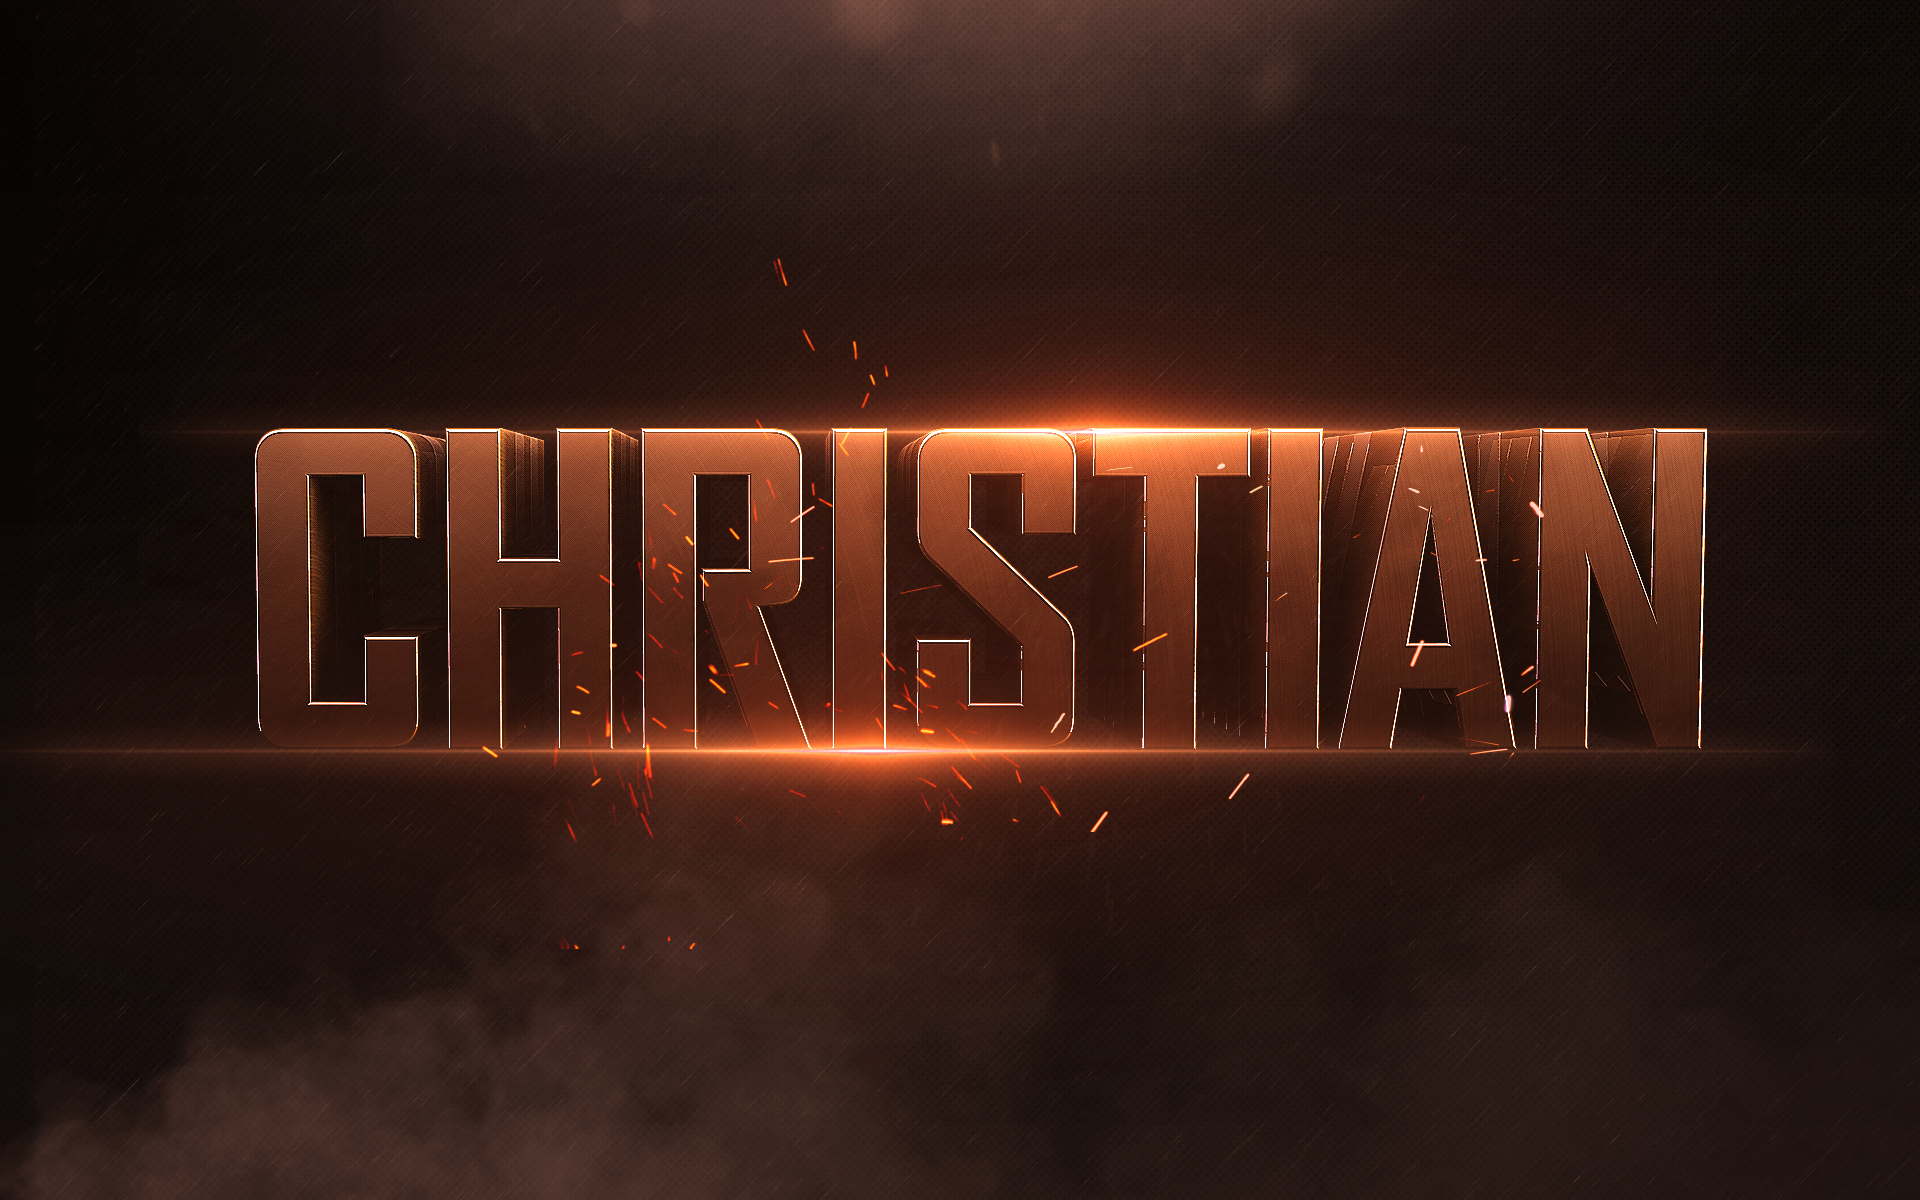 Christian Wallpaper Losertry On DeviantArt above is published to at Friday, January 30th, 2015 by Boergeus and categorized categorized Desktop category.